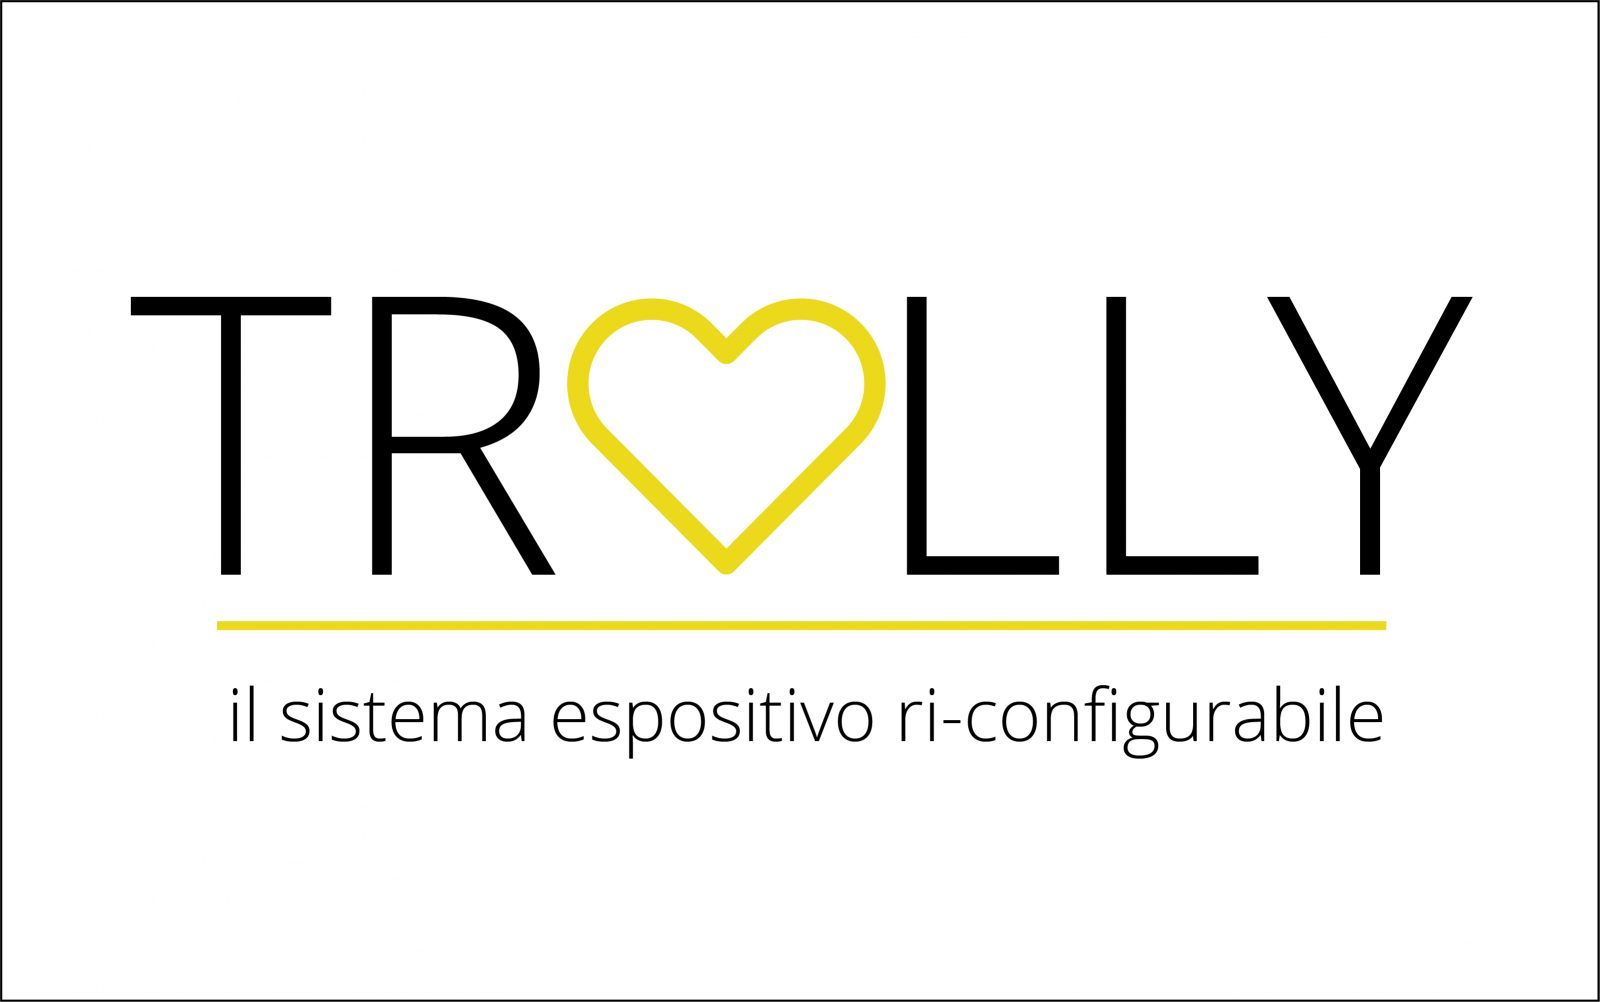 #Tools | Trolly